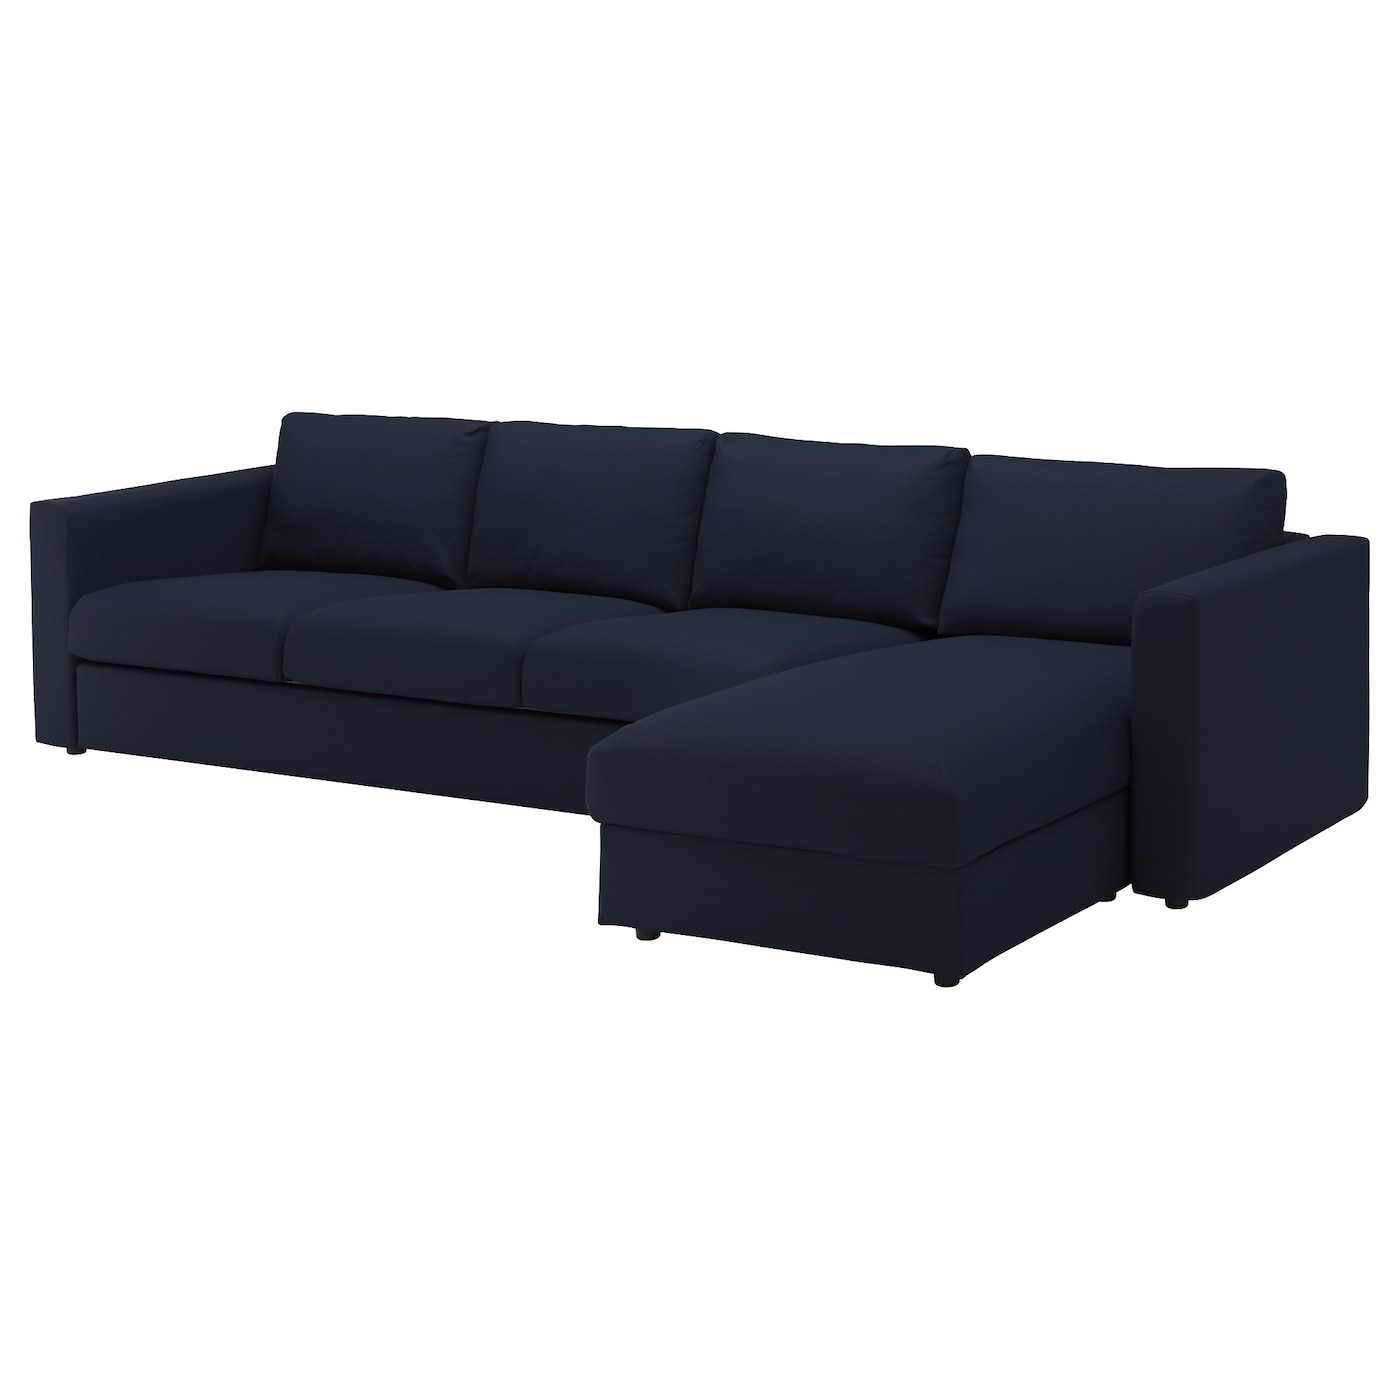 4 Seat Sofa Vimle With Chaise Longue Grasbo Black Blue